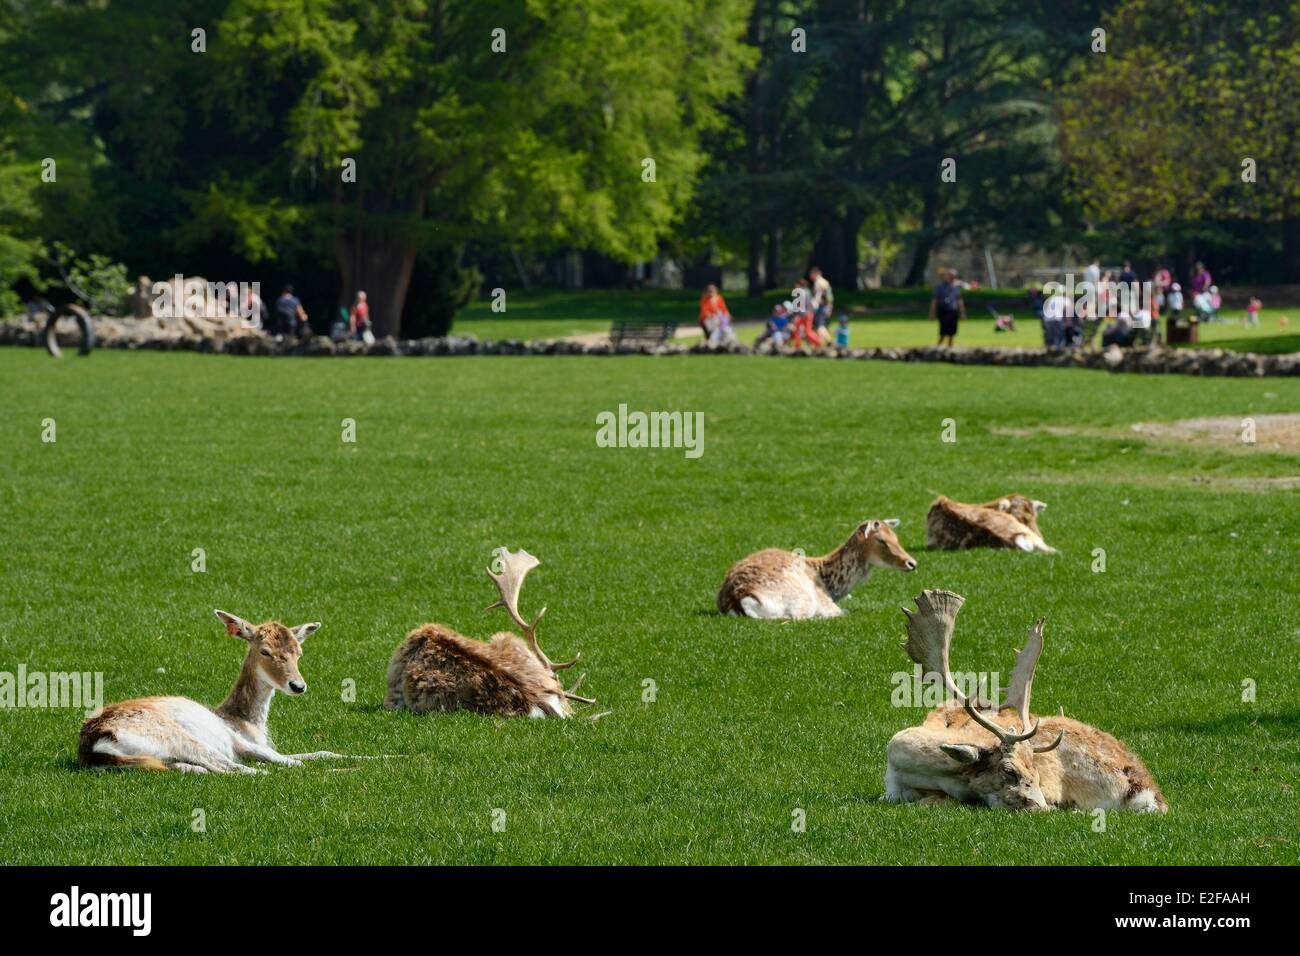 France Rhone Lyon Parc De La Tete D Or Tete D Or Park The Deer Stock Photo Alamy